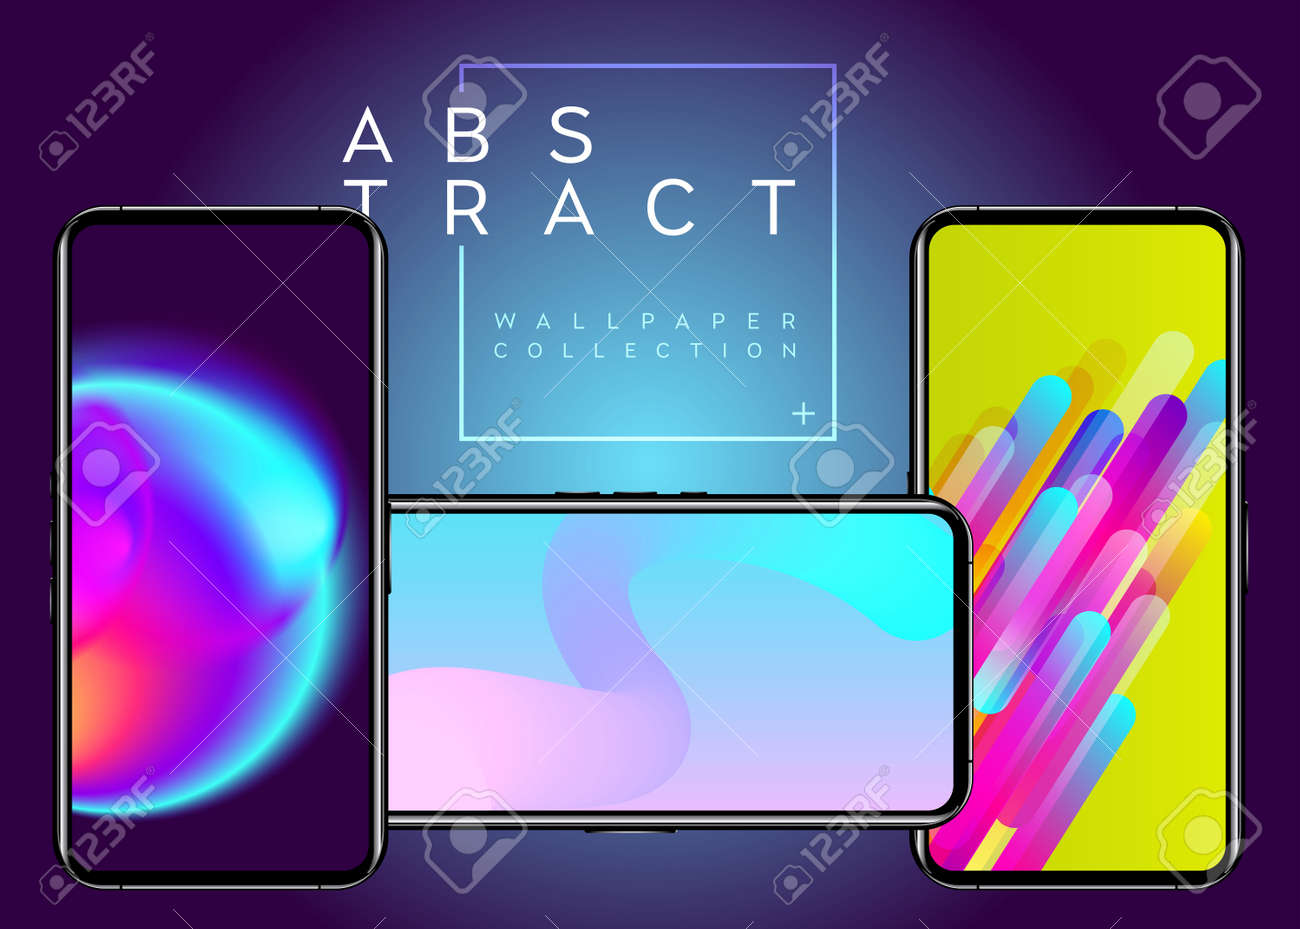 Phone Abstract Futuristic Wallpaper Collection Creative Colorful